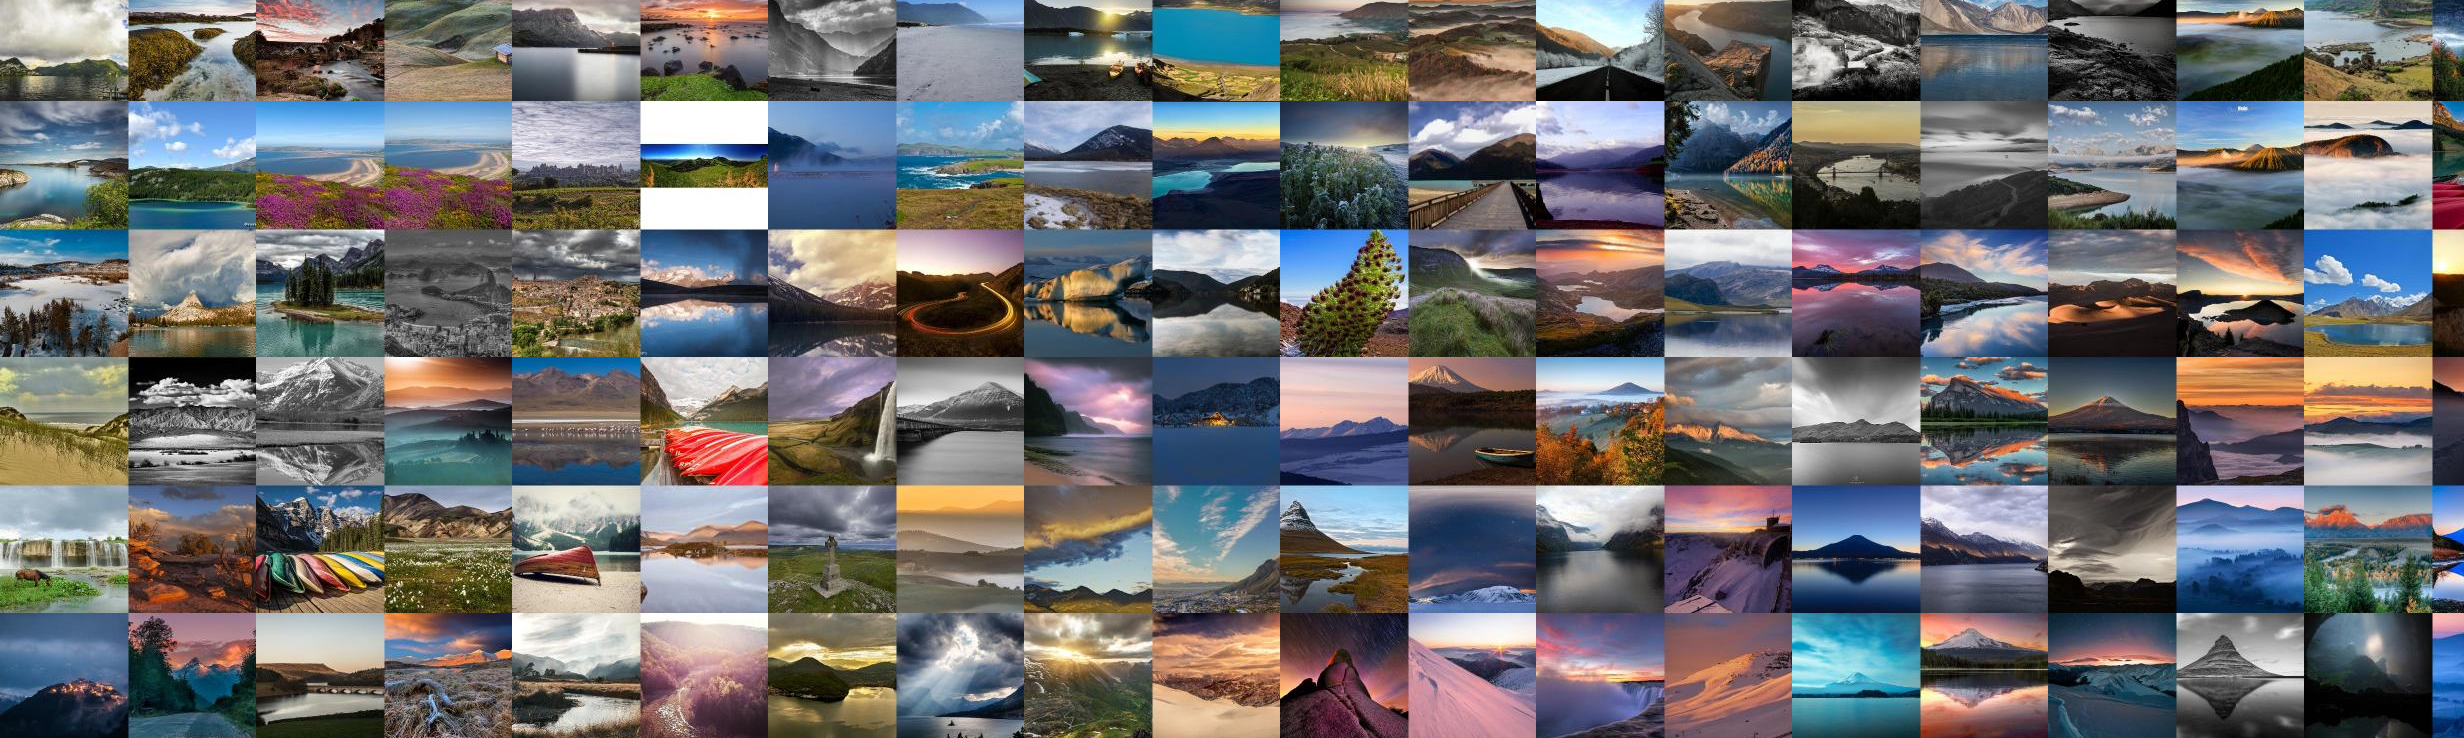 The World's Top Photos At A Glance With 500px Prime Visual Search